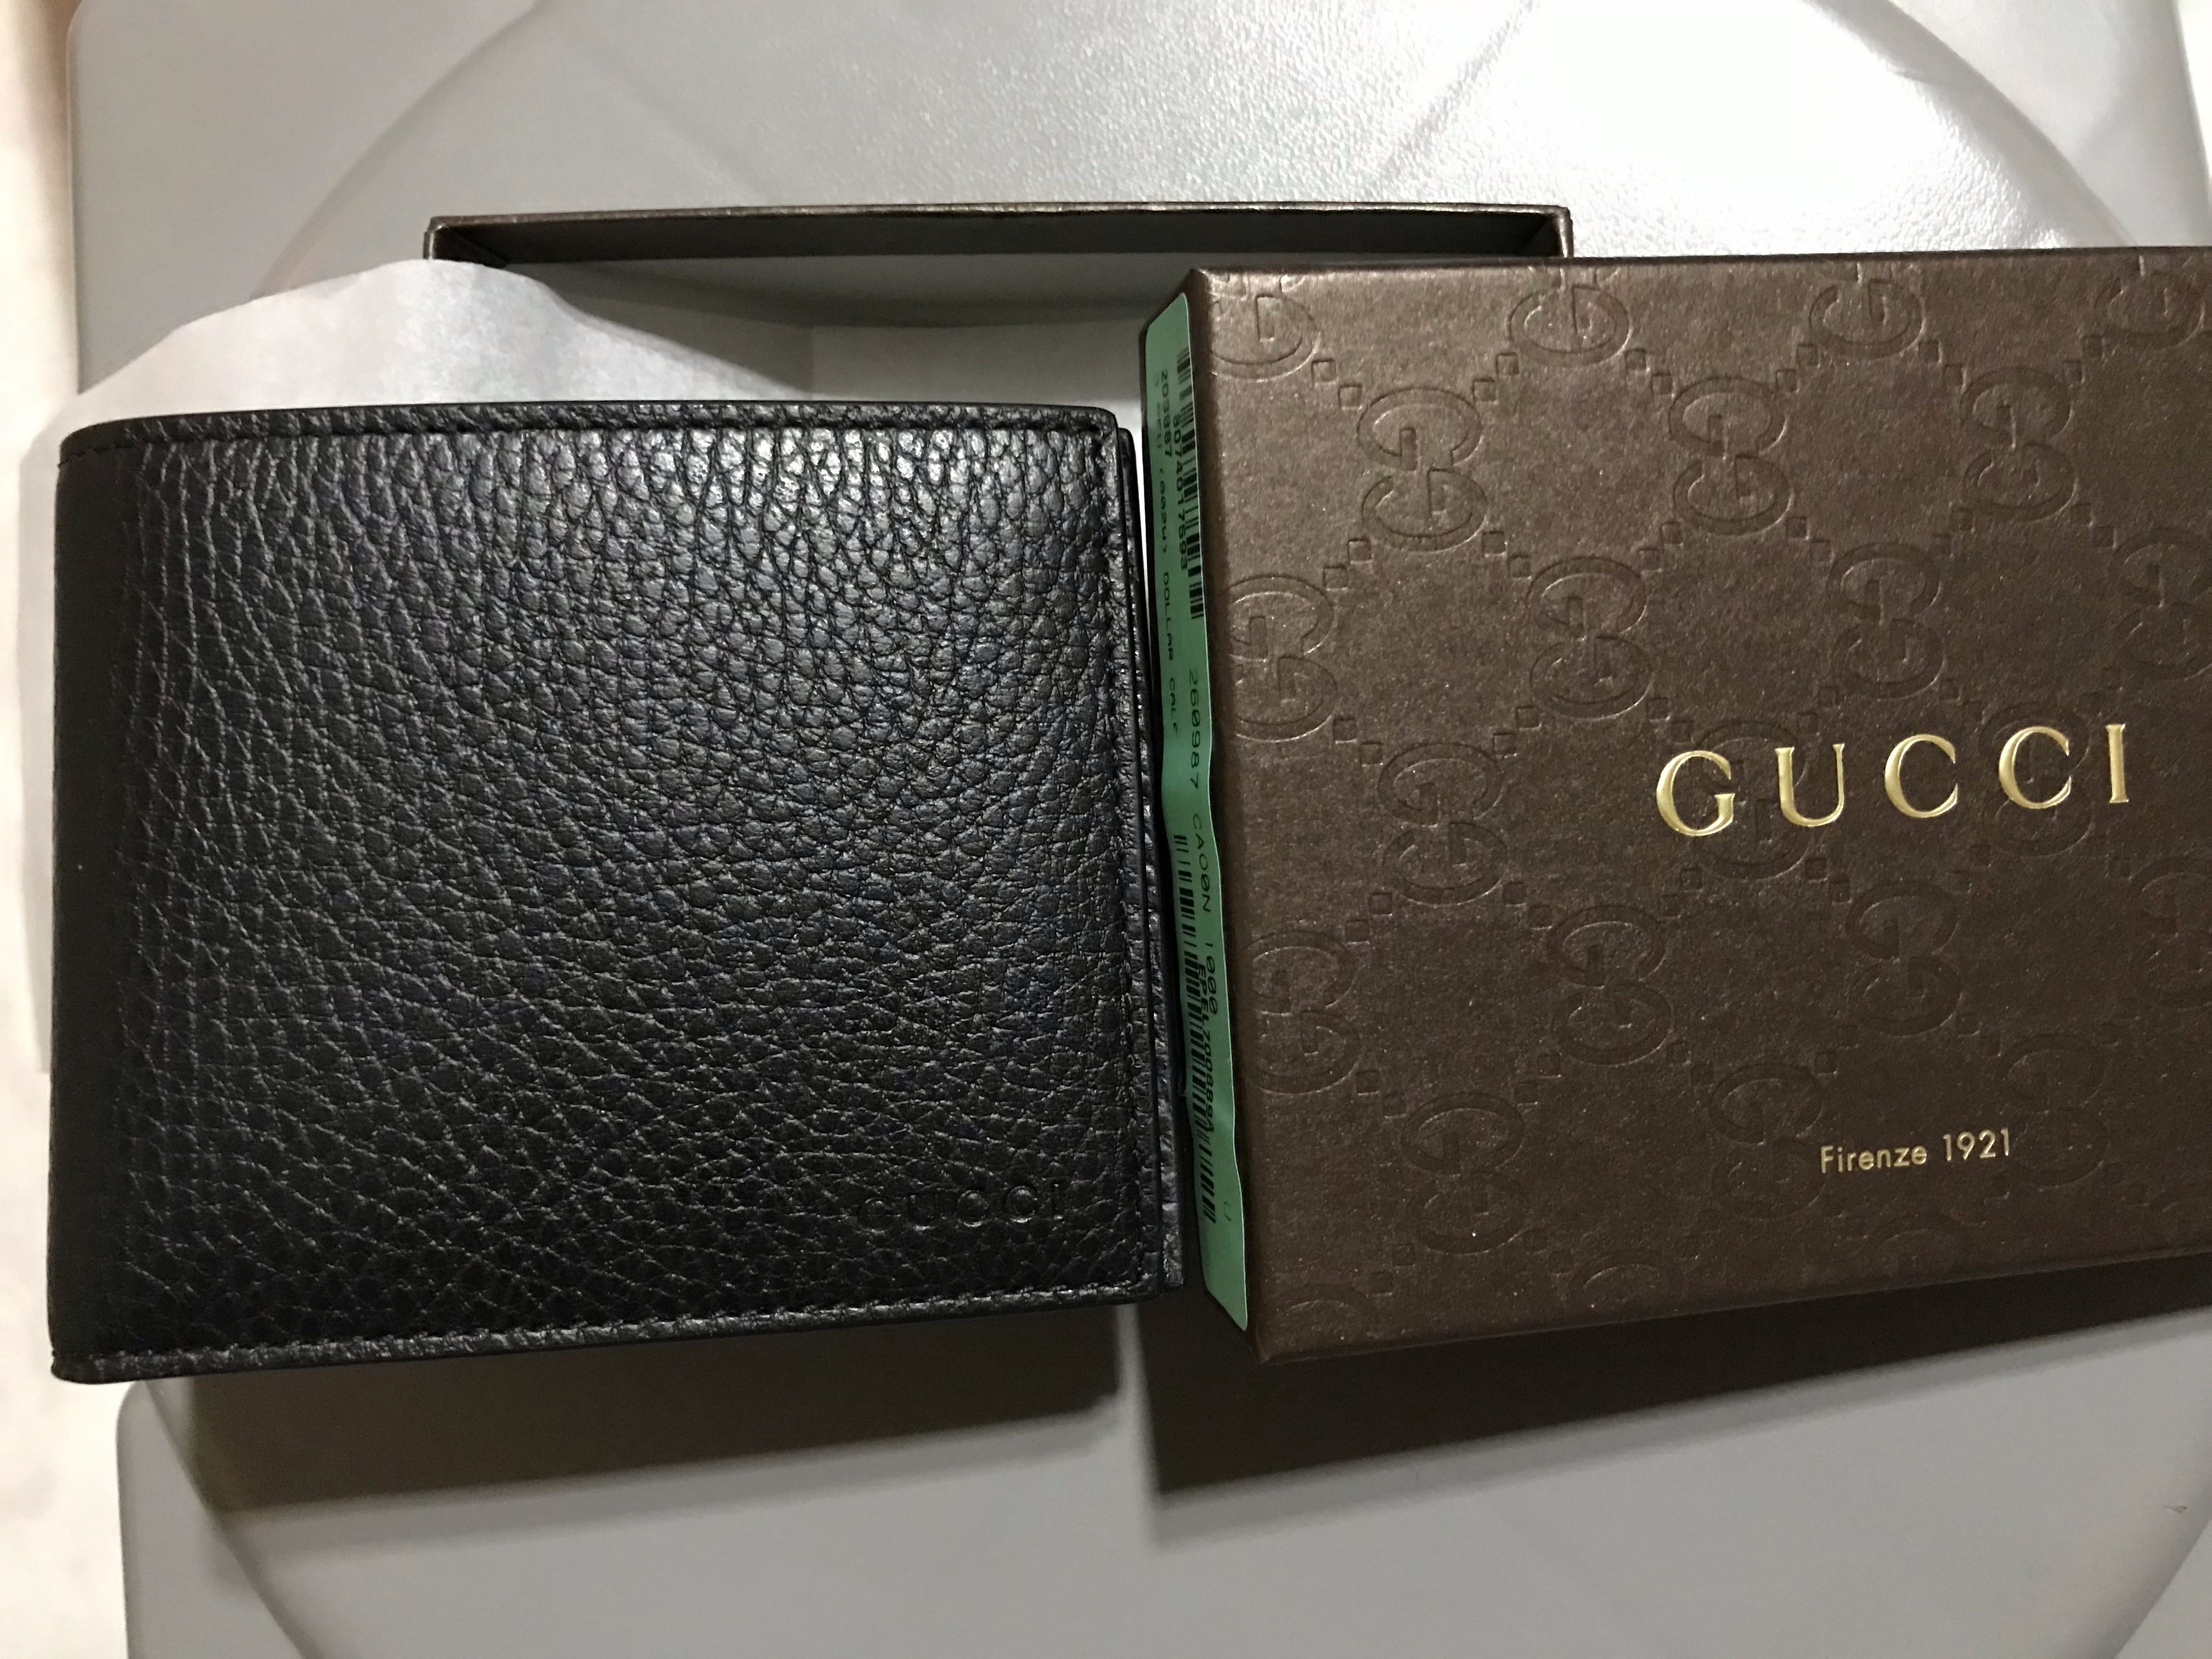 da86aaac329e0e Gucci Men's Cellarius Pebbled Leather Bifold Wallet (Black), Men's Fashion,  Bags & Wallets, Wallets on Carousell